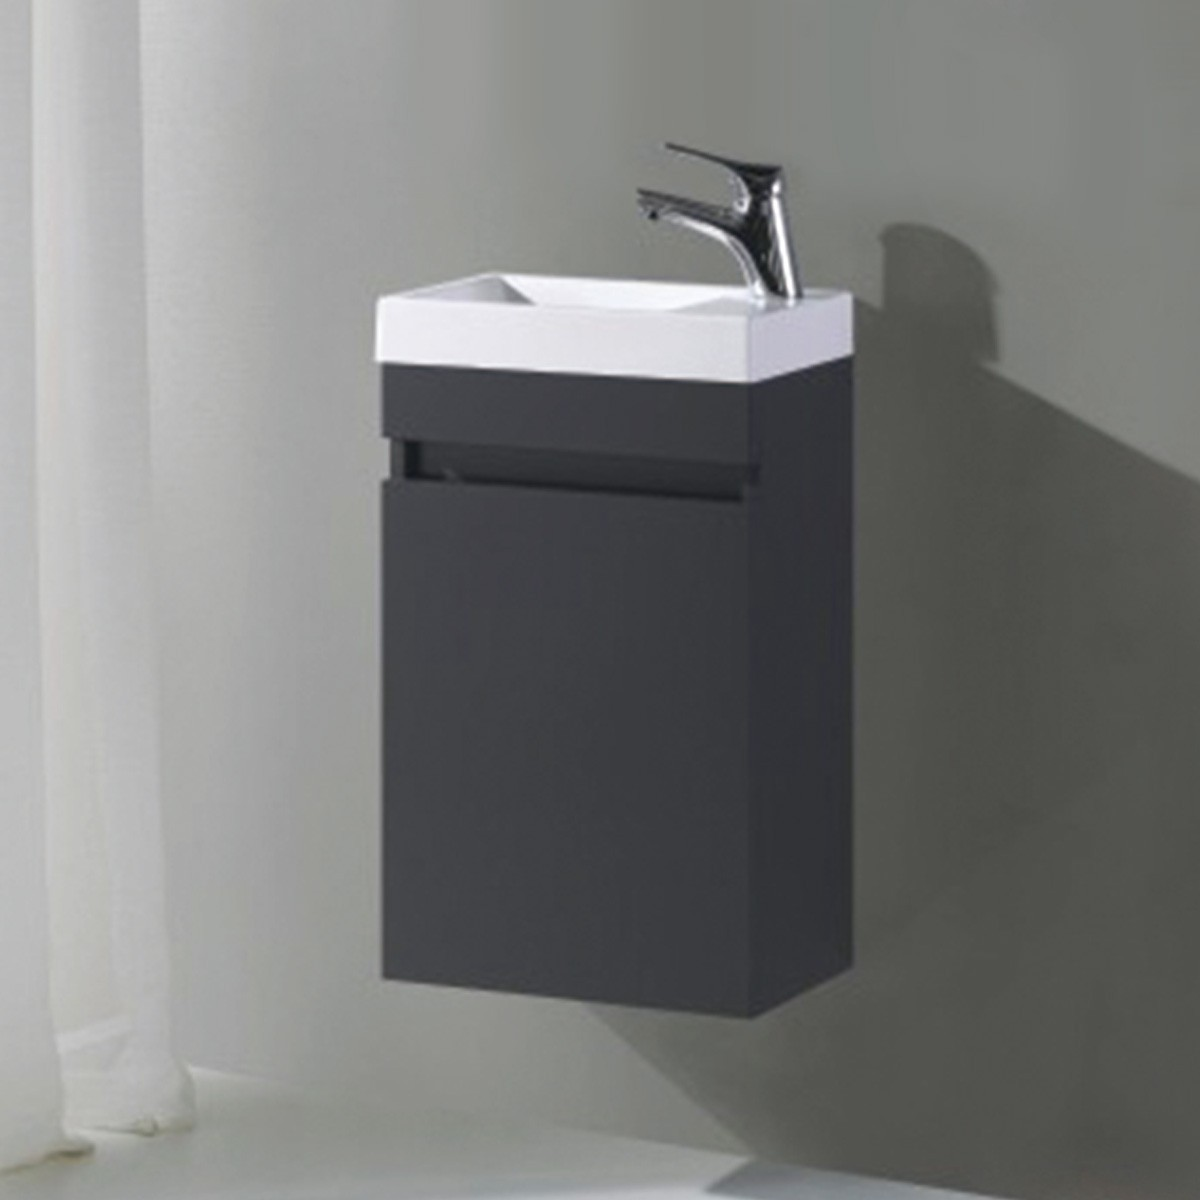 16 In. Wall Mount Vanity with Basin (MS400C-V)